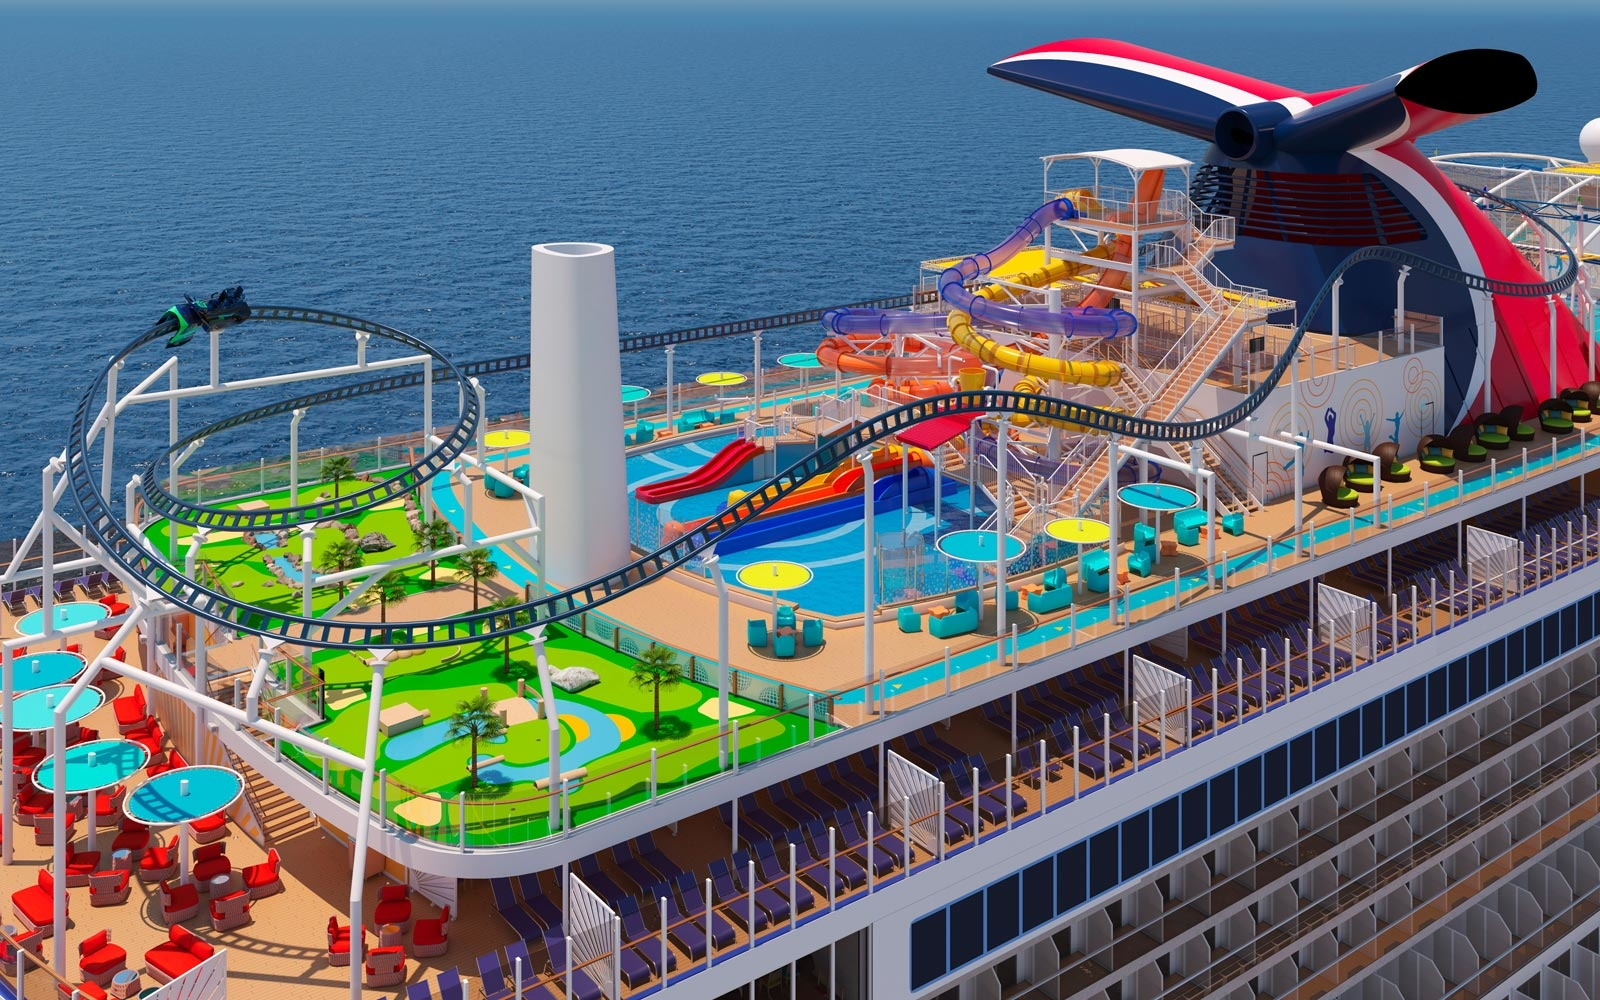 The Carnival Mardi Gras Cruise Ship Will Have Premium Suites That Feel Like a Private Retreat